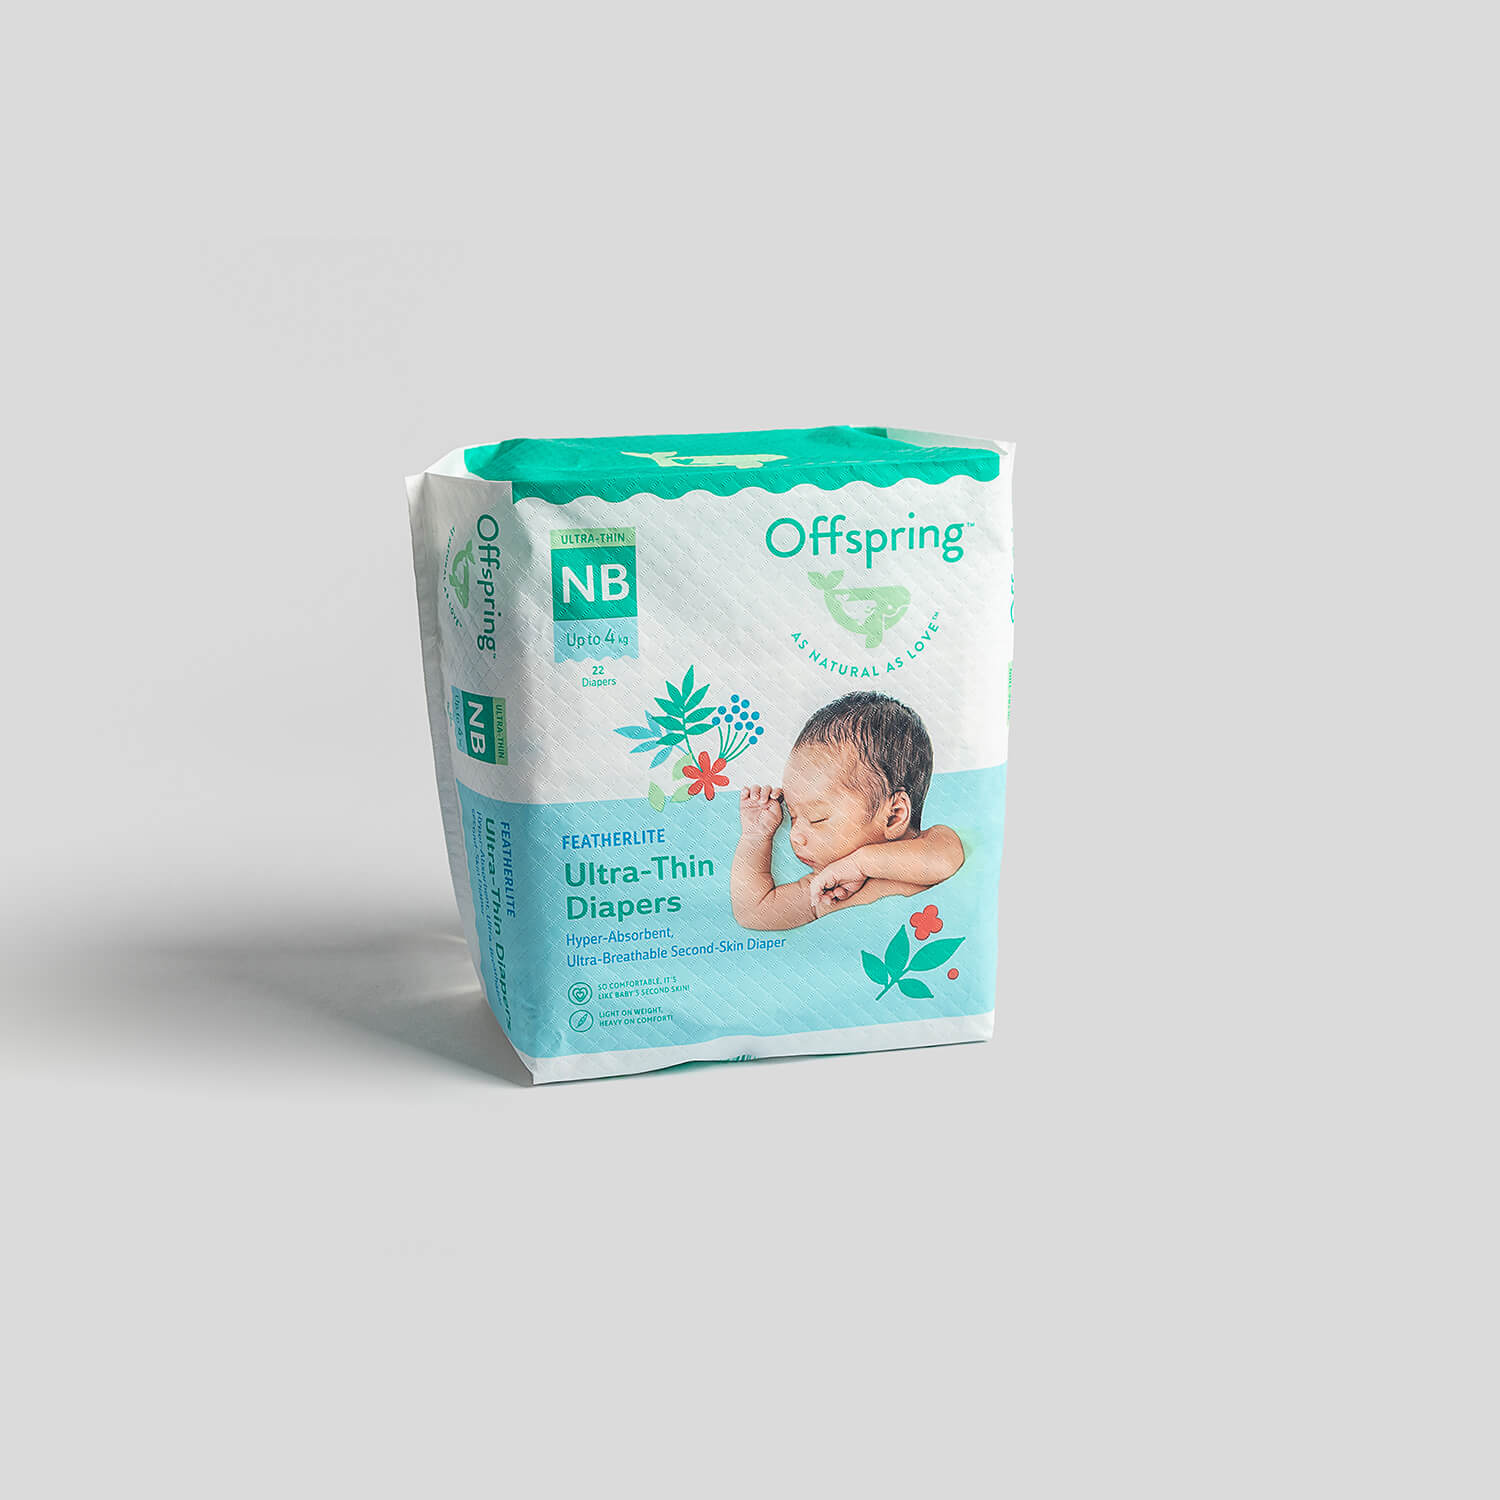 Ultra-Thin New Born Diapers